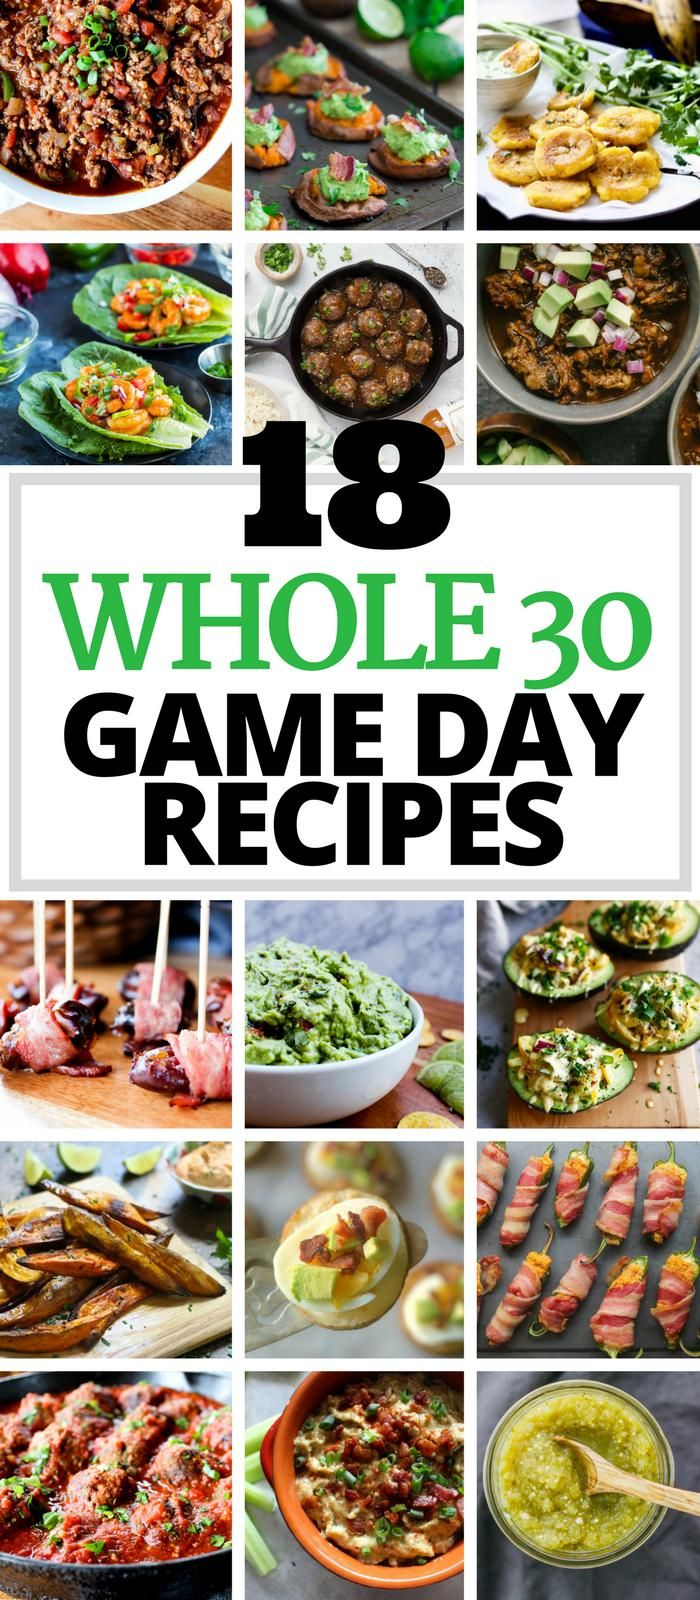 18 Whole30 Game Day Recipes #gamedayfood